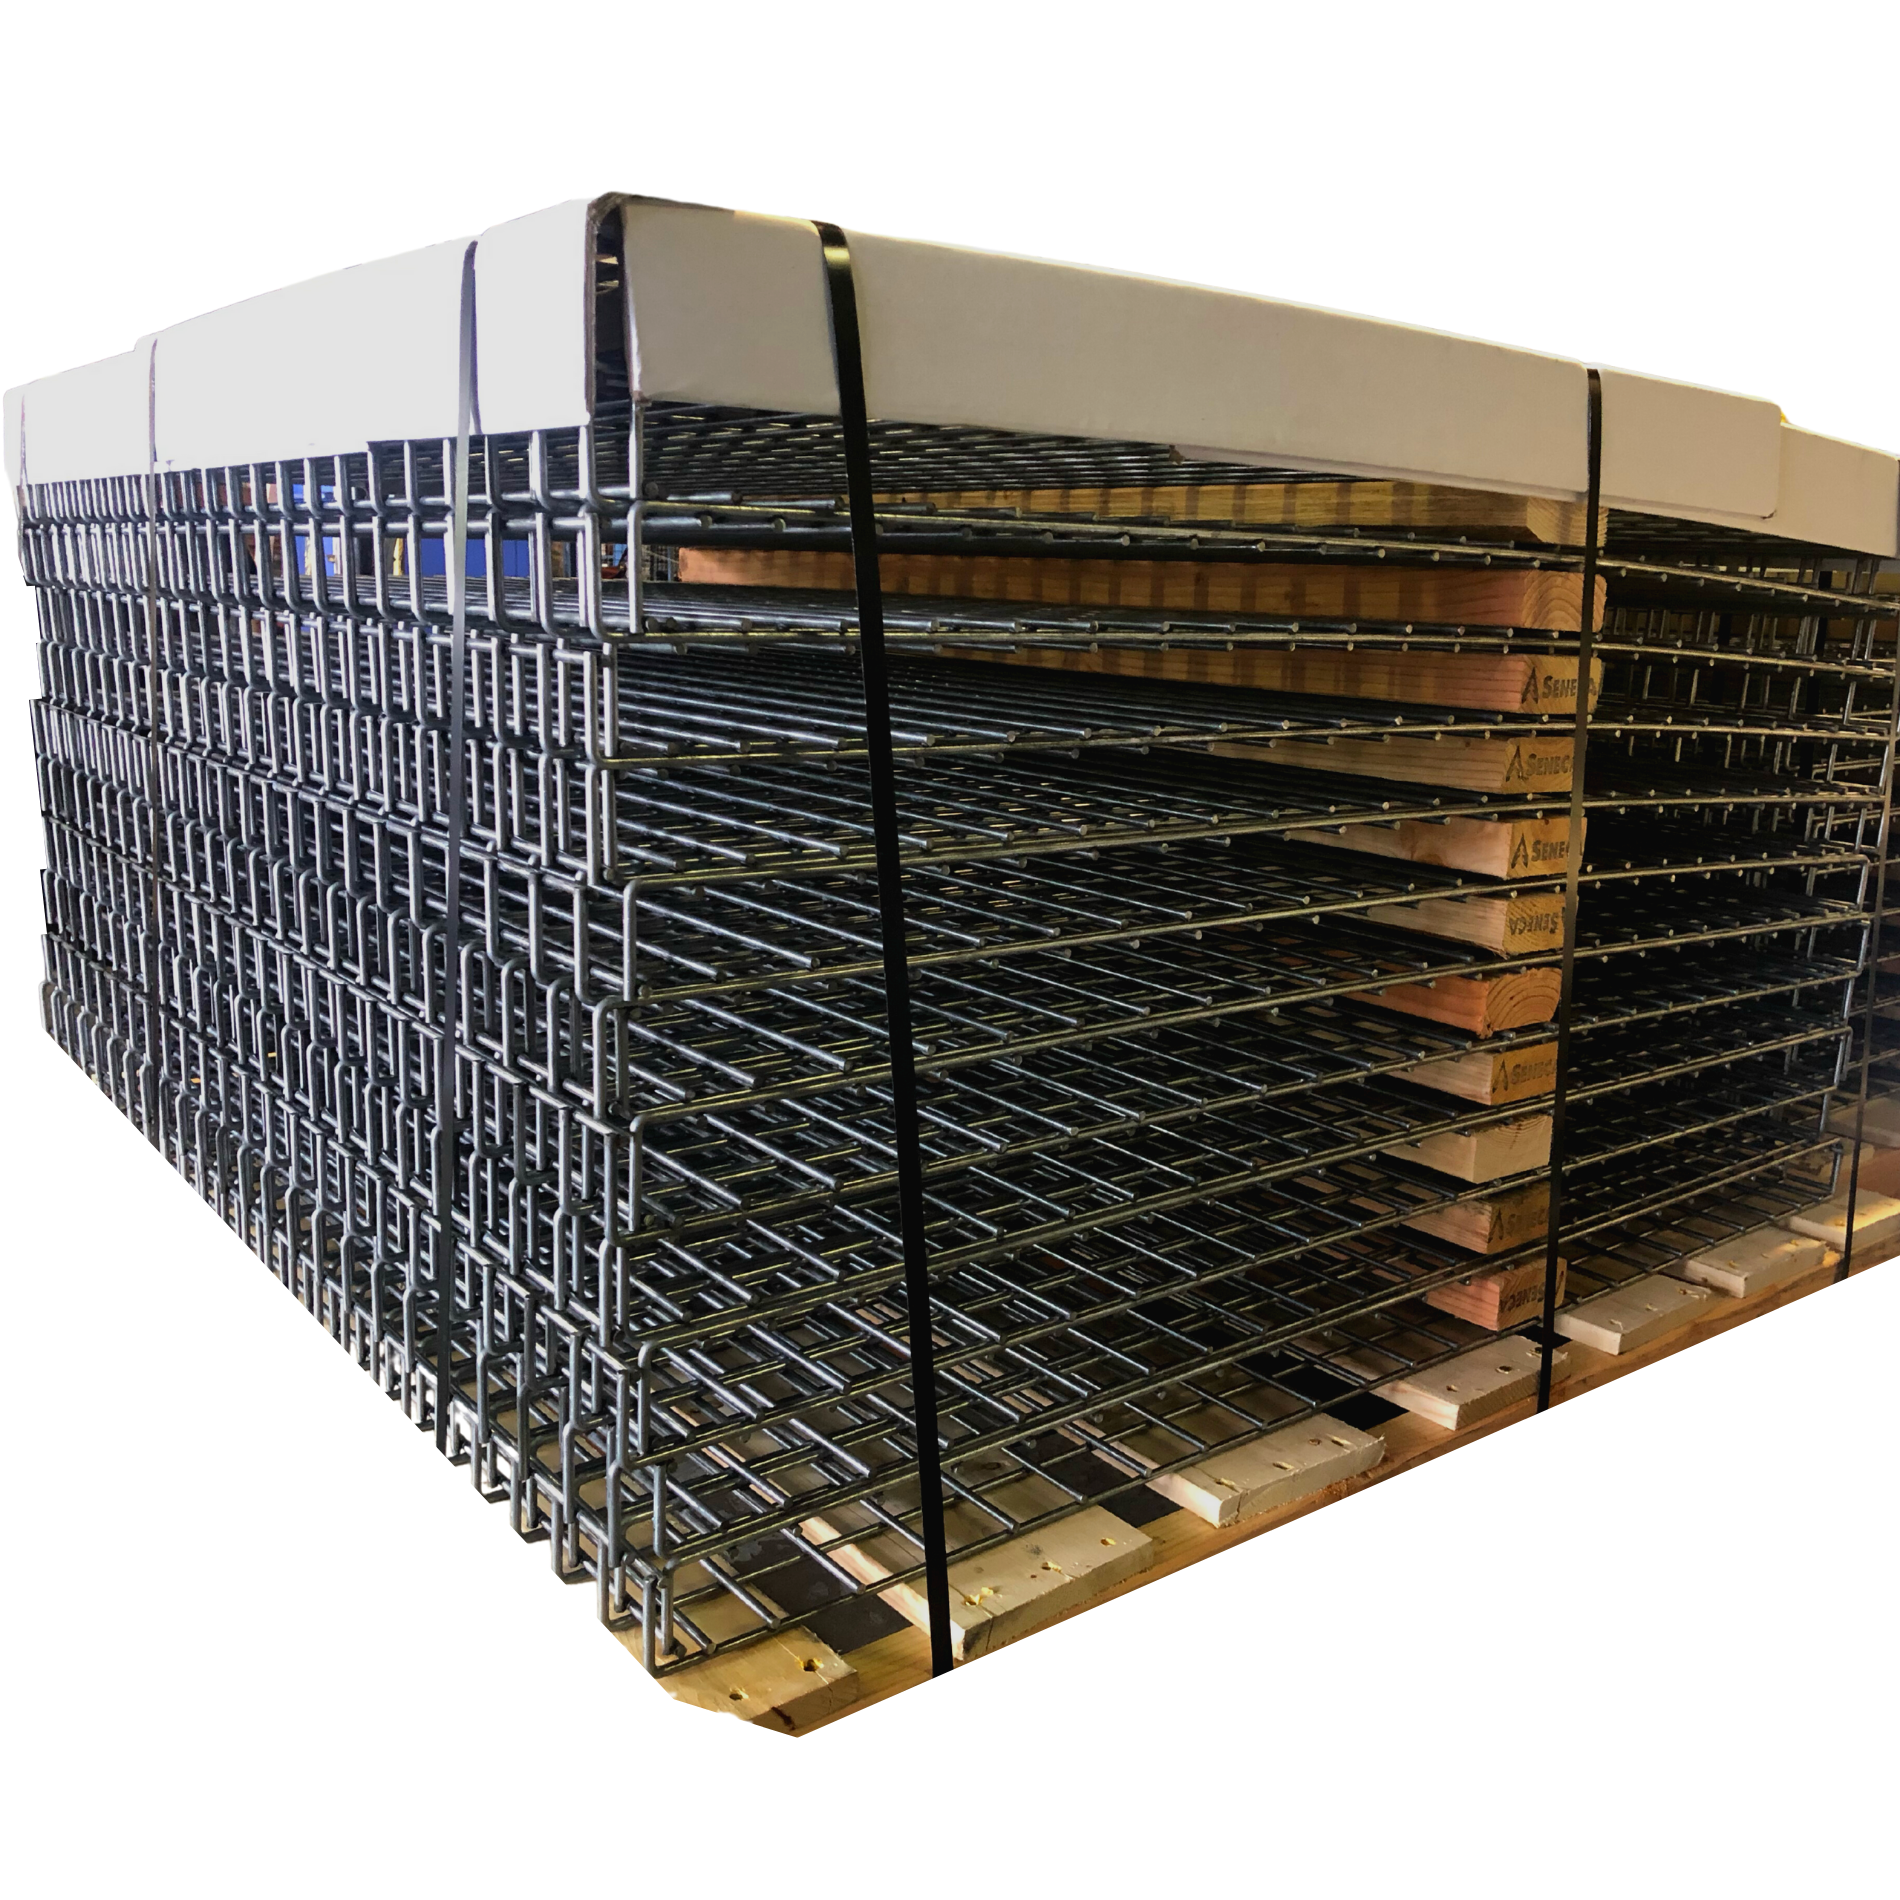 Stainless Steel Racks - 3